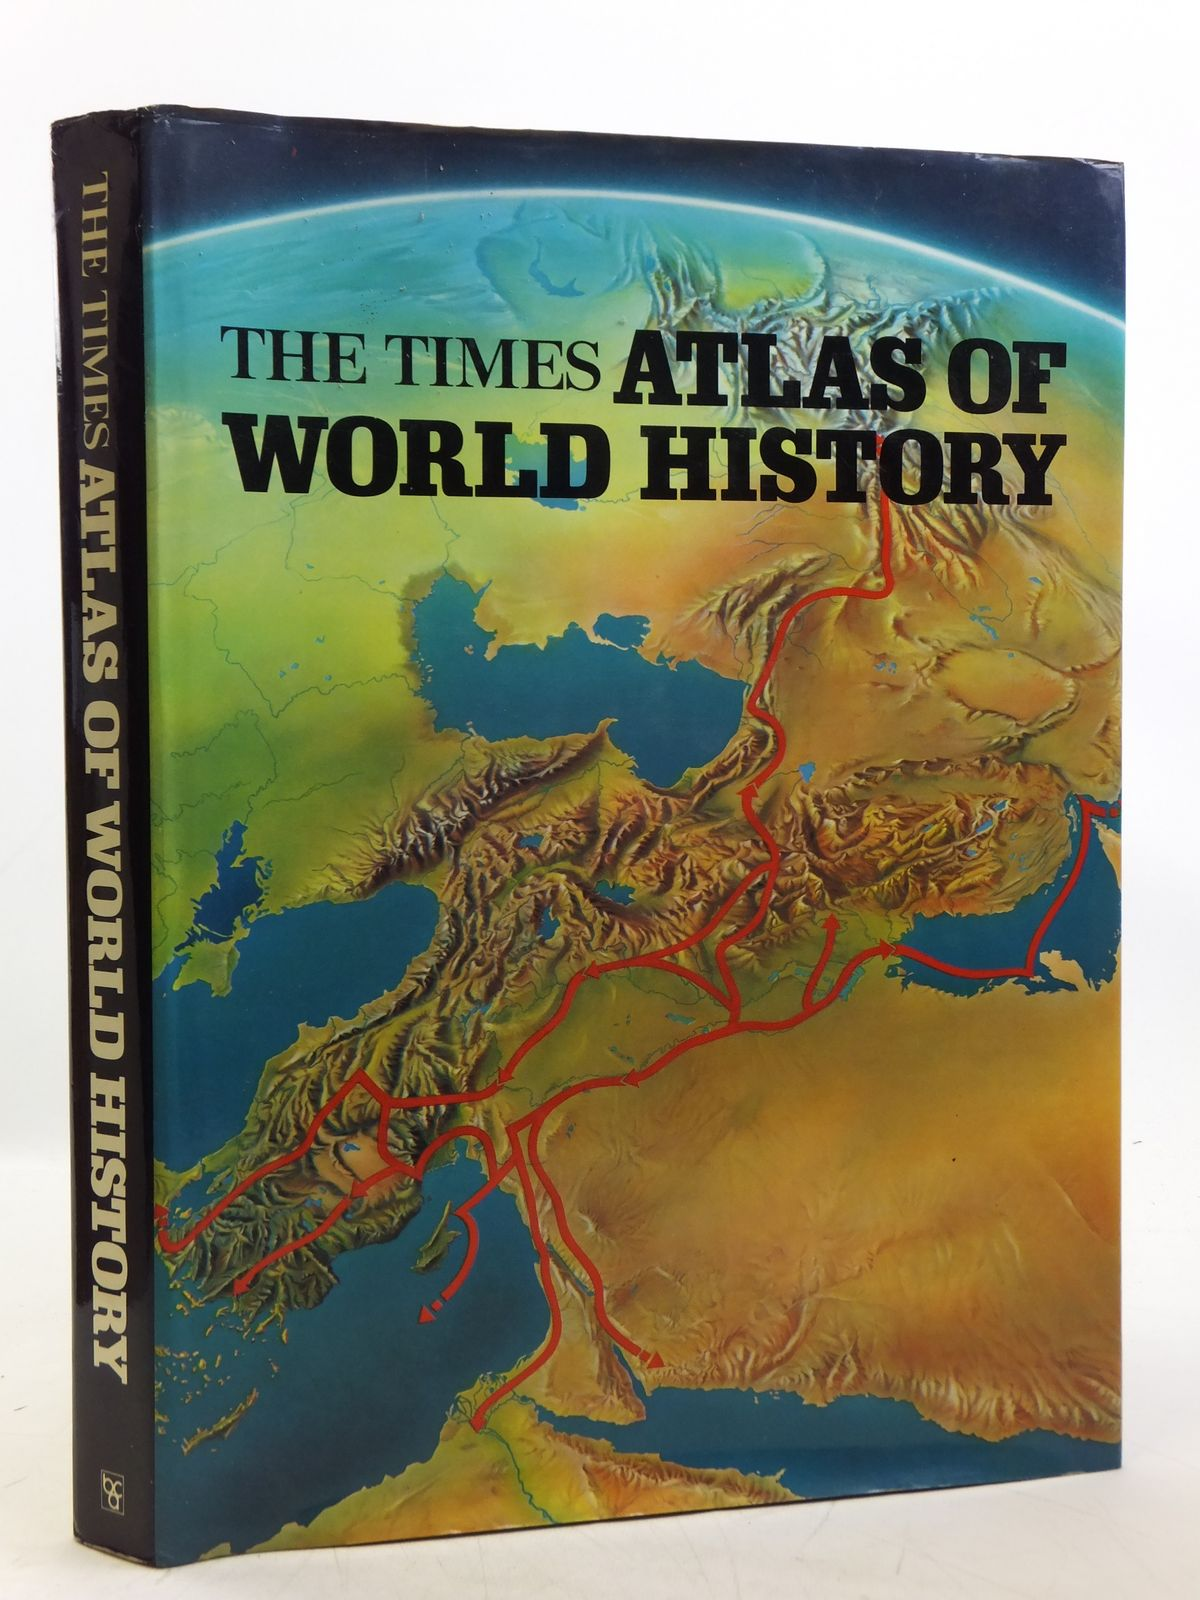 Photo of THE TIMES ATLAS OF WORLD HISTORY written by Barraclough, Geoffrey published by Book Club Associates (STOCK CODE: 2119944)  for sale by Stella & Rose's Books